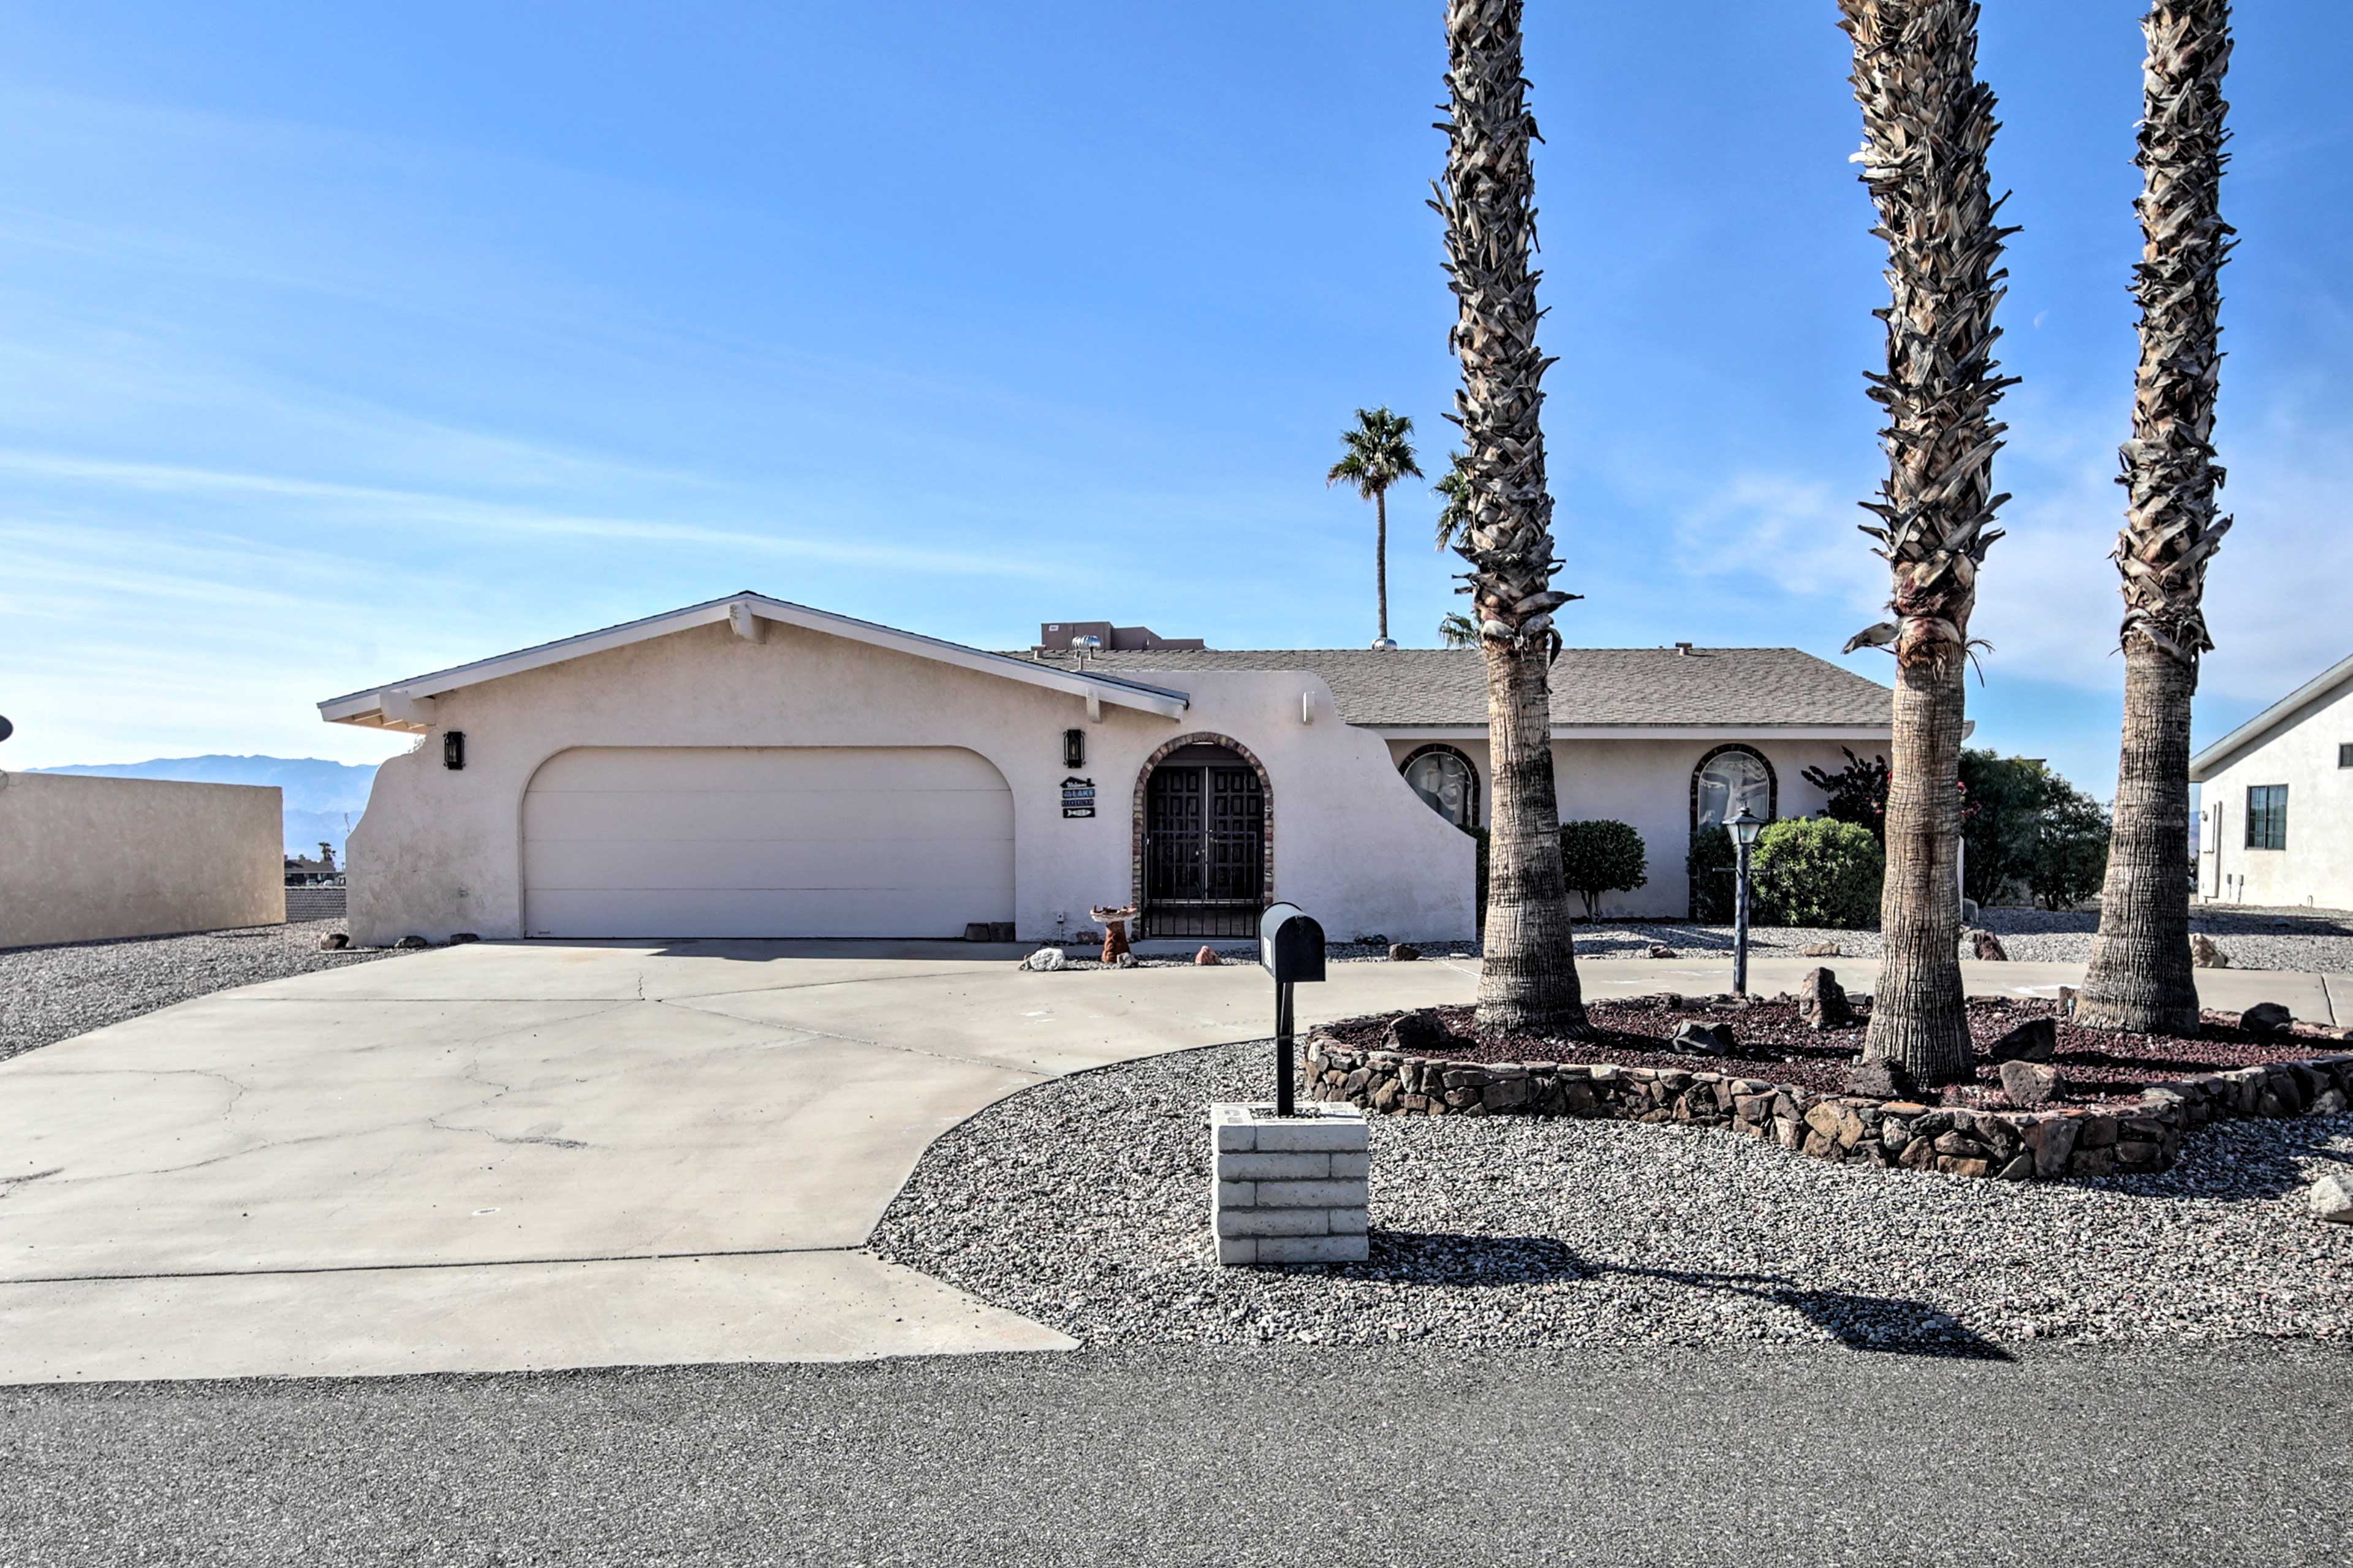 With a prime desert location and ample amenities, this home can't be beat!